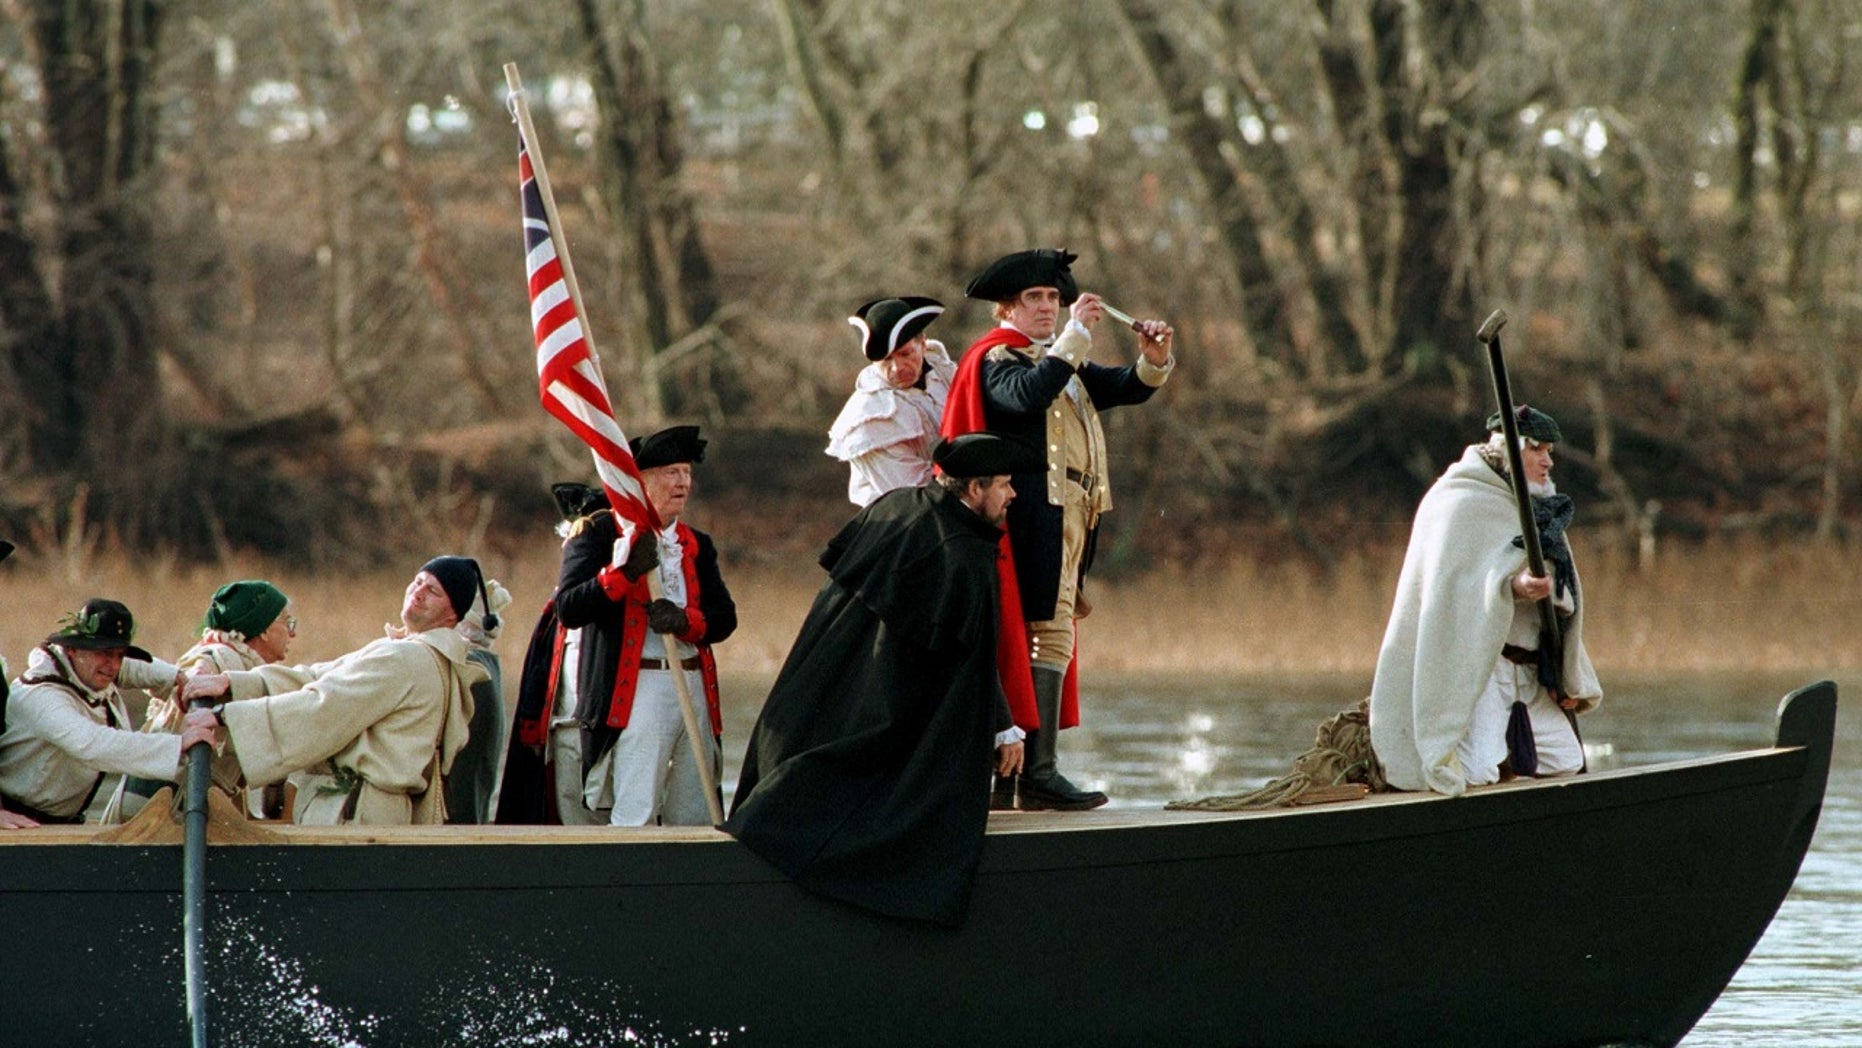 This year's reenactment of Washington crossing the Delaware will mark the 241st anniversary of the 1776 crossing.